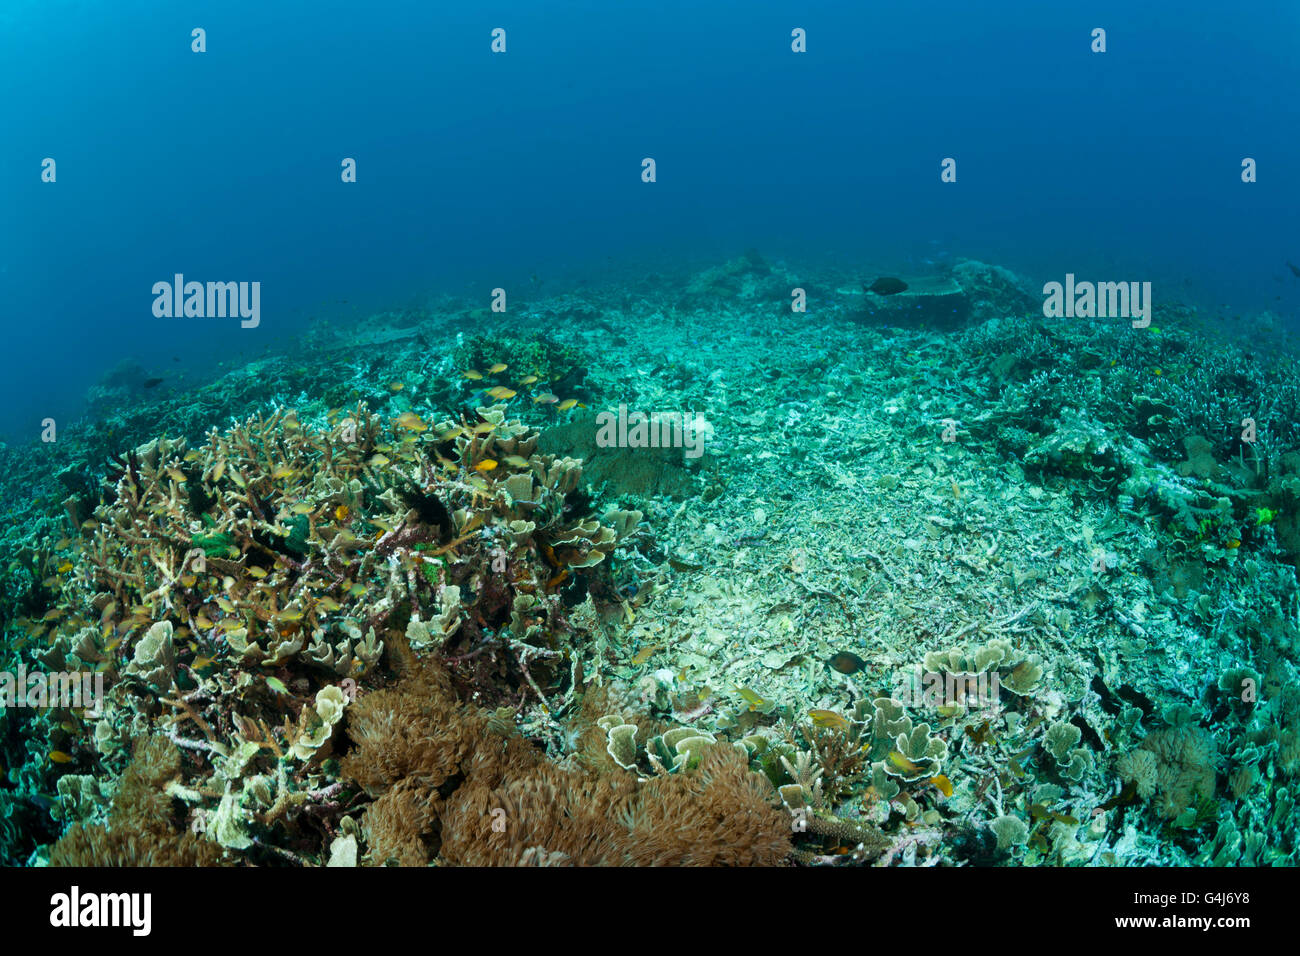 Damaged Coral Reef, Blast fishing, dynamite fishing, Raja Ampat, West Papua, Indonesia - Stock Image